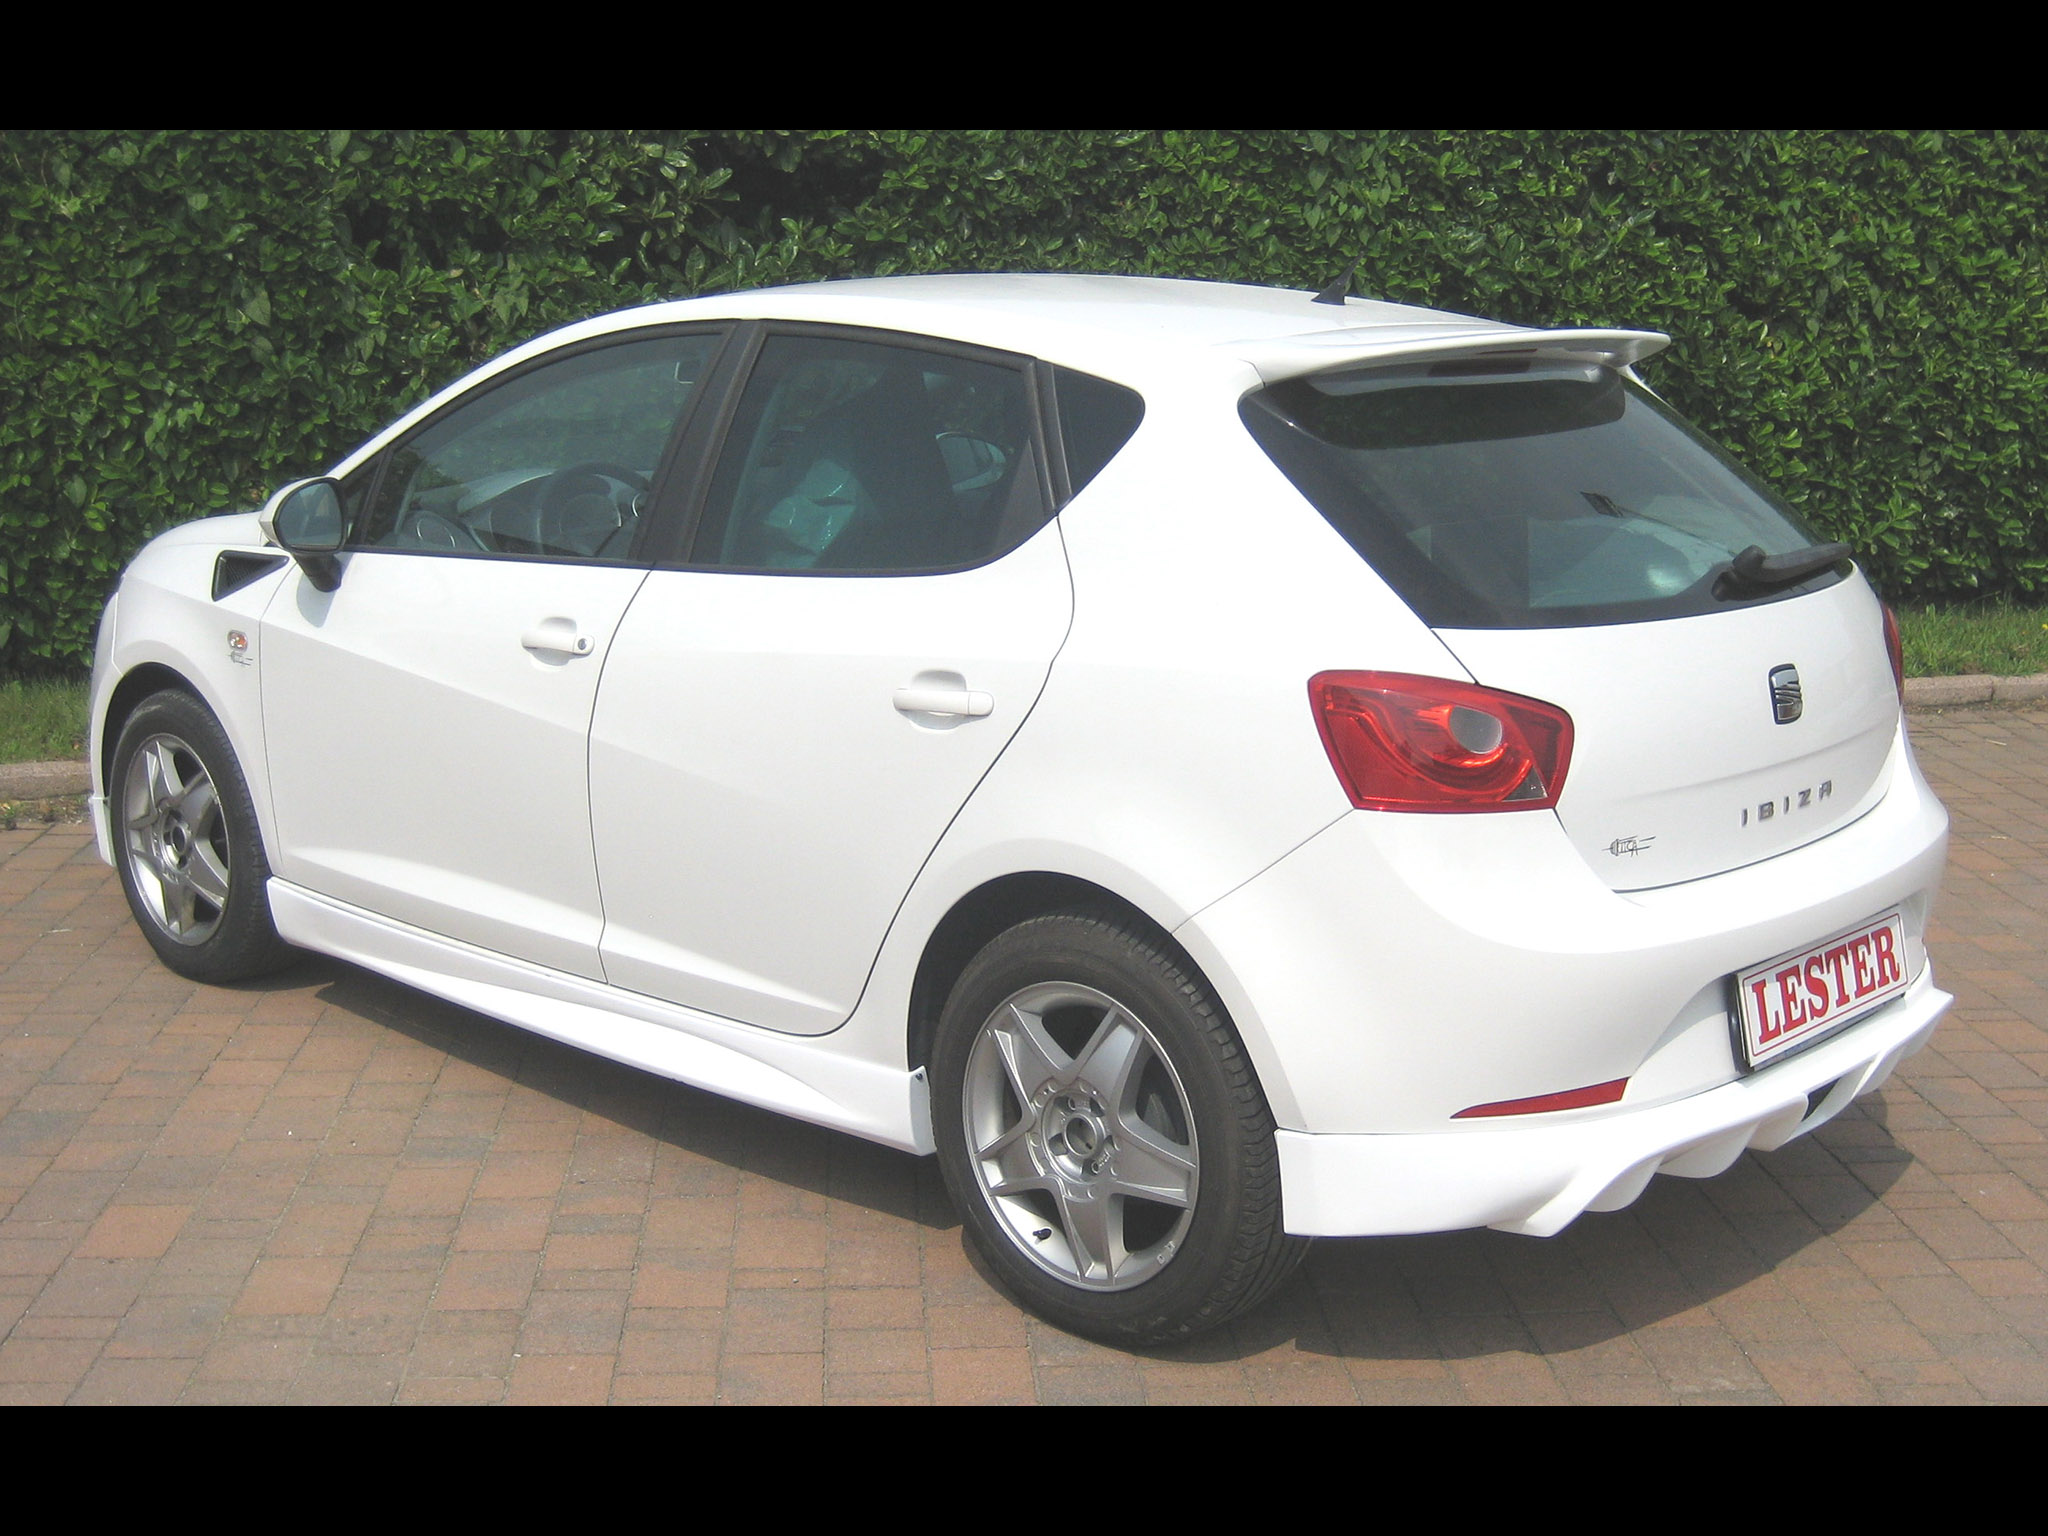 lester seat ibiza 6j 5 door 2010 lester seat ibiza 6j 5 door 2010 photo 2 car in pictures. Black Bedroom Furniture Sets. Home Design Ideas